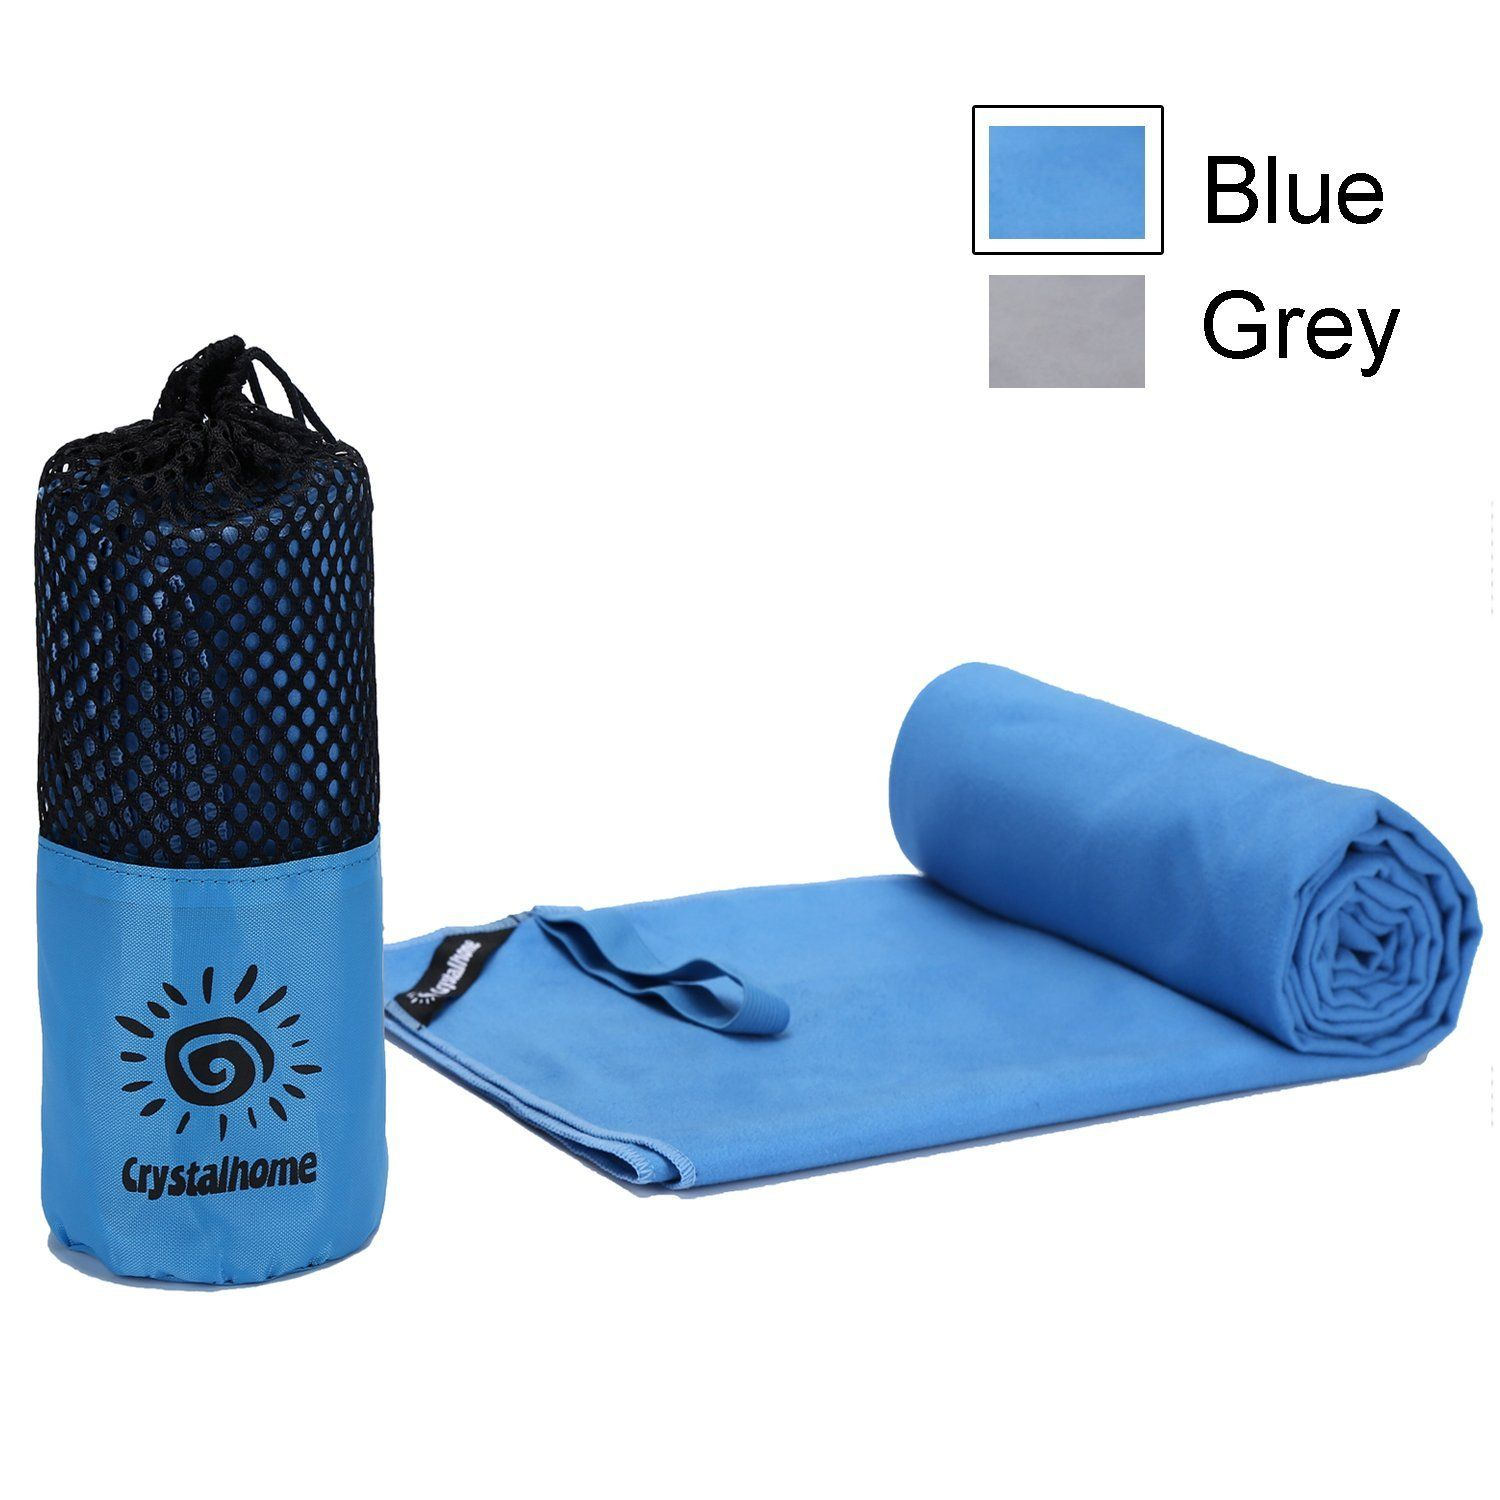 Gym Sport Travel Camping Beach Fast Drying Cotton Bath Towel Yoga Mat Towel W